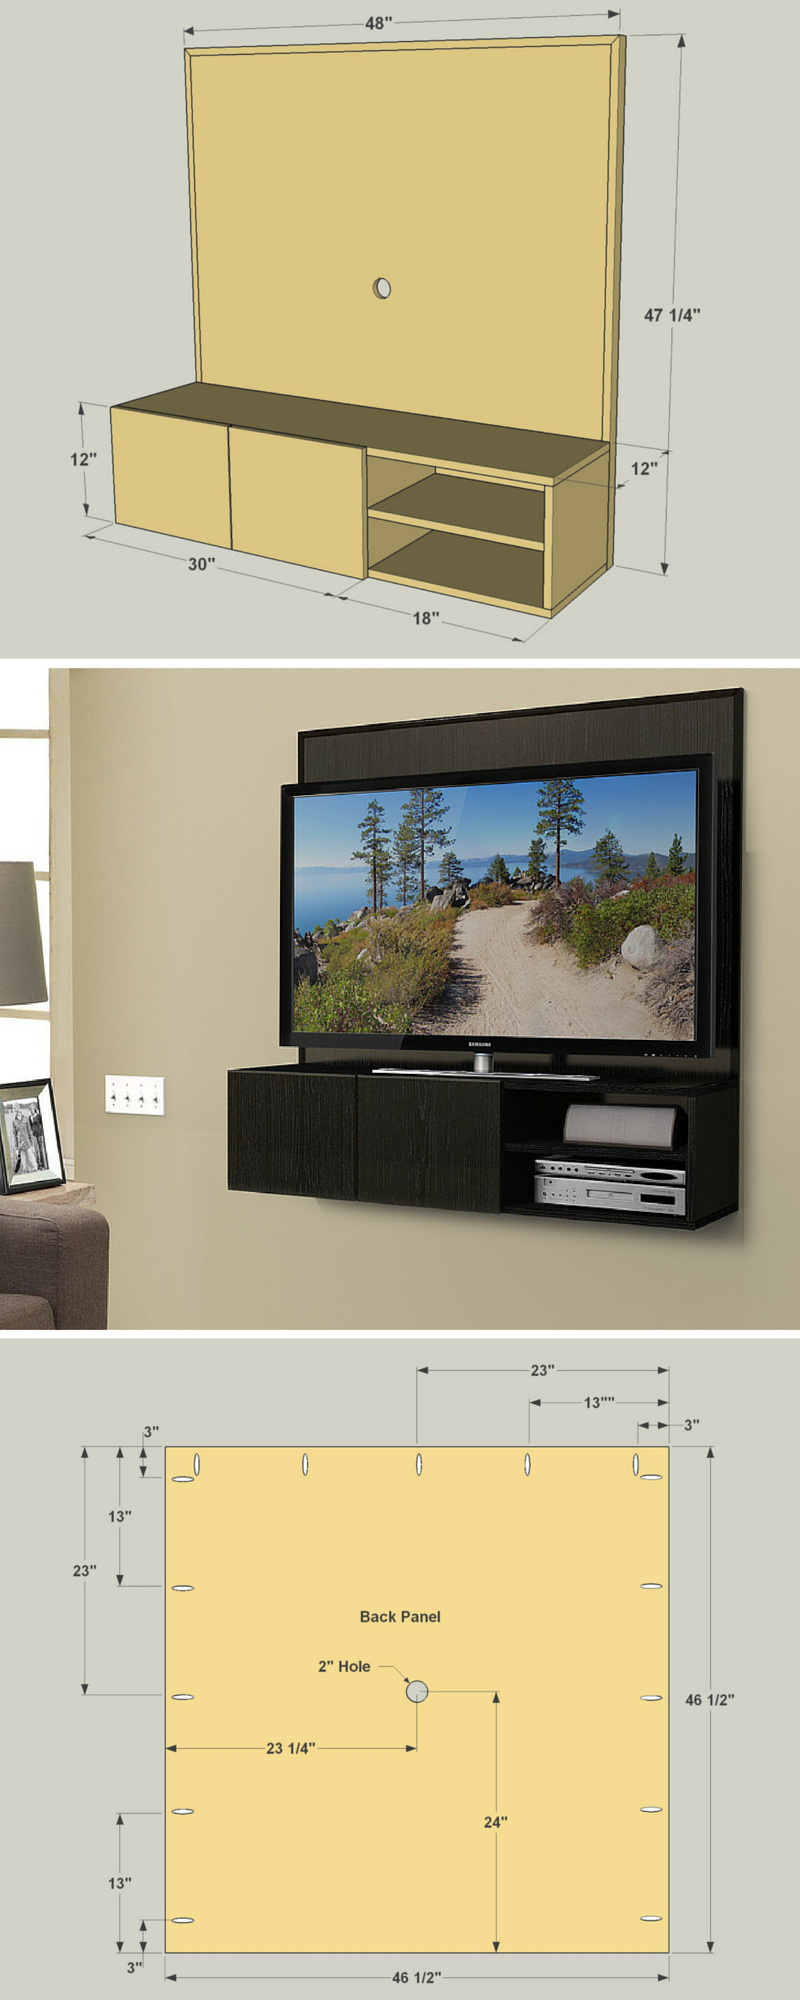 25 Wall Mounted Entertainment Center Ideas Design For Your Home